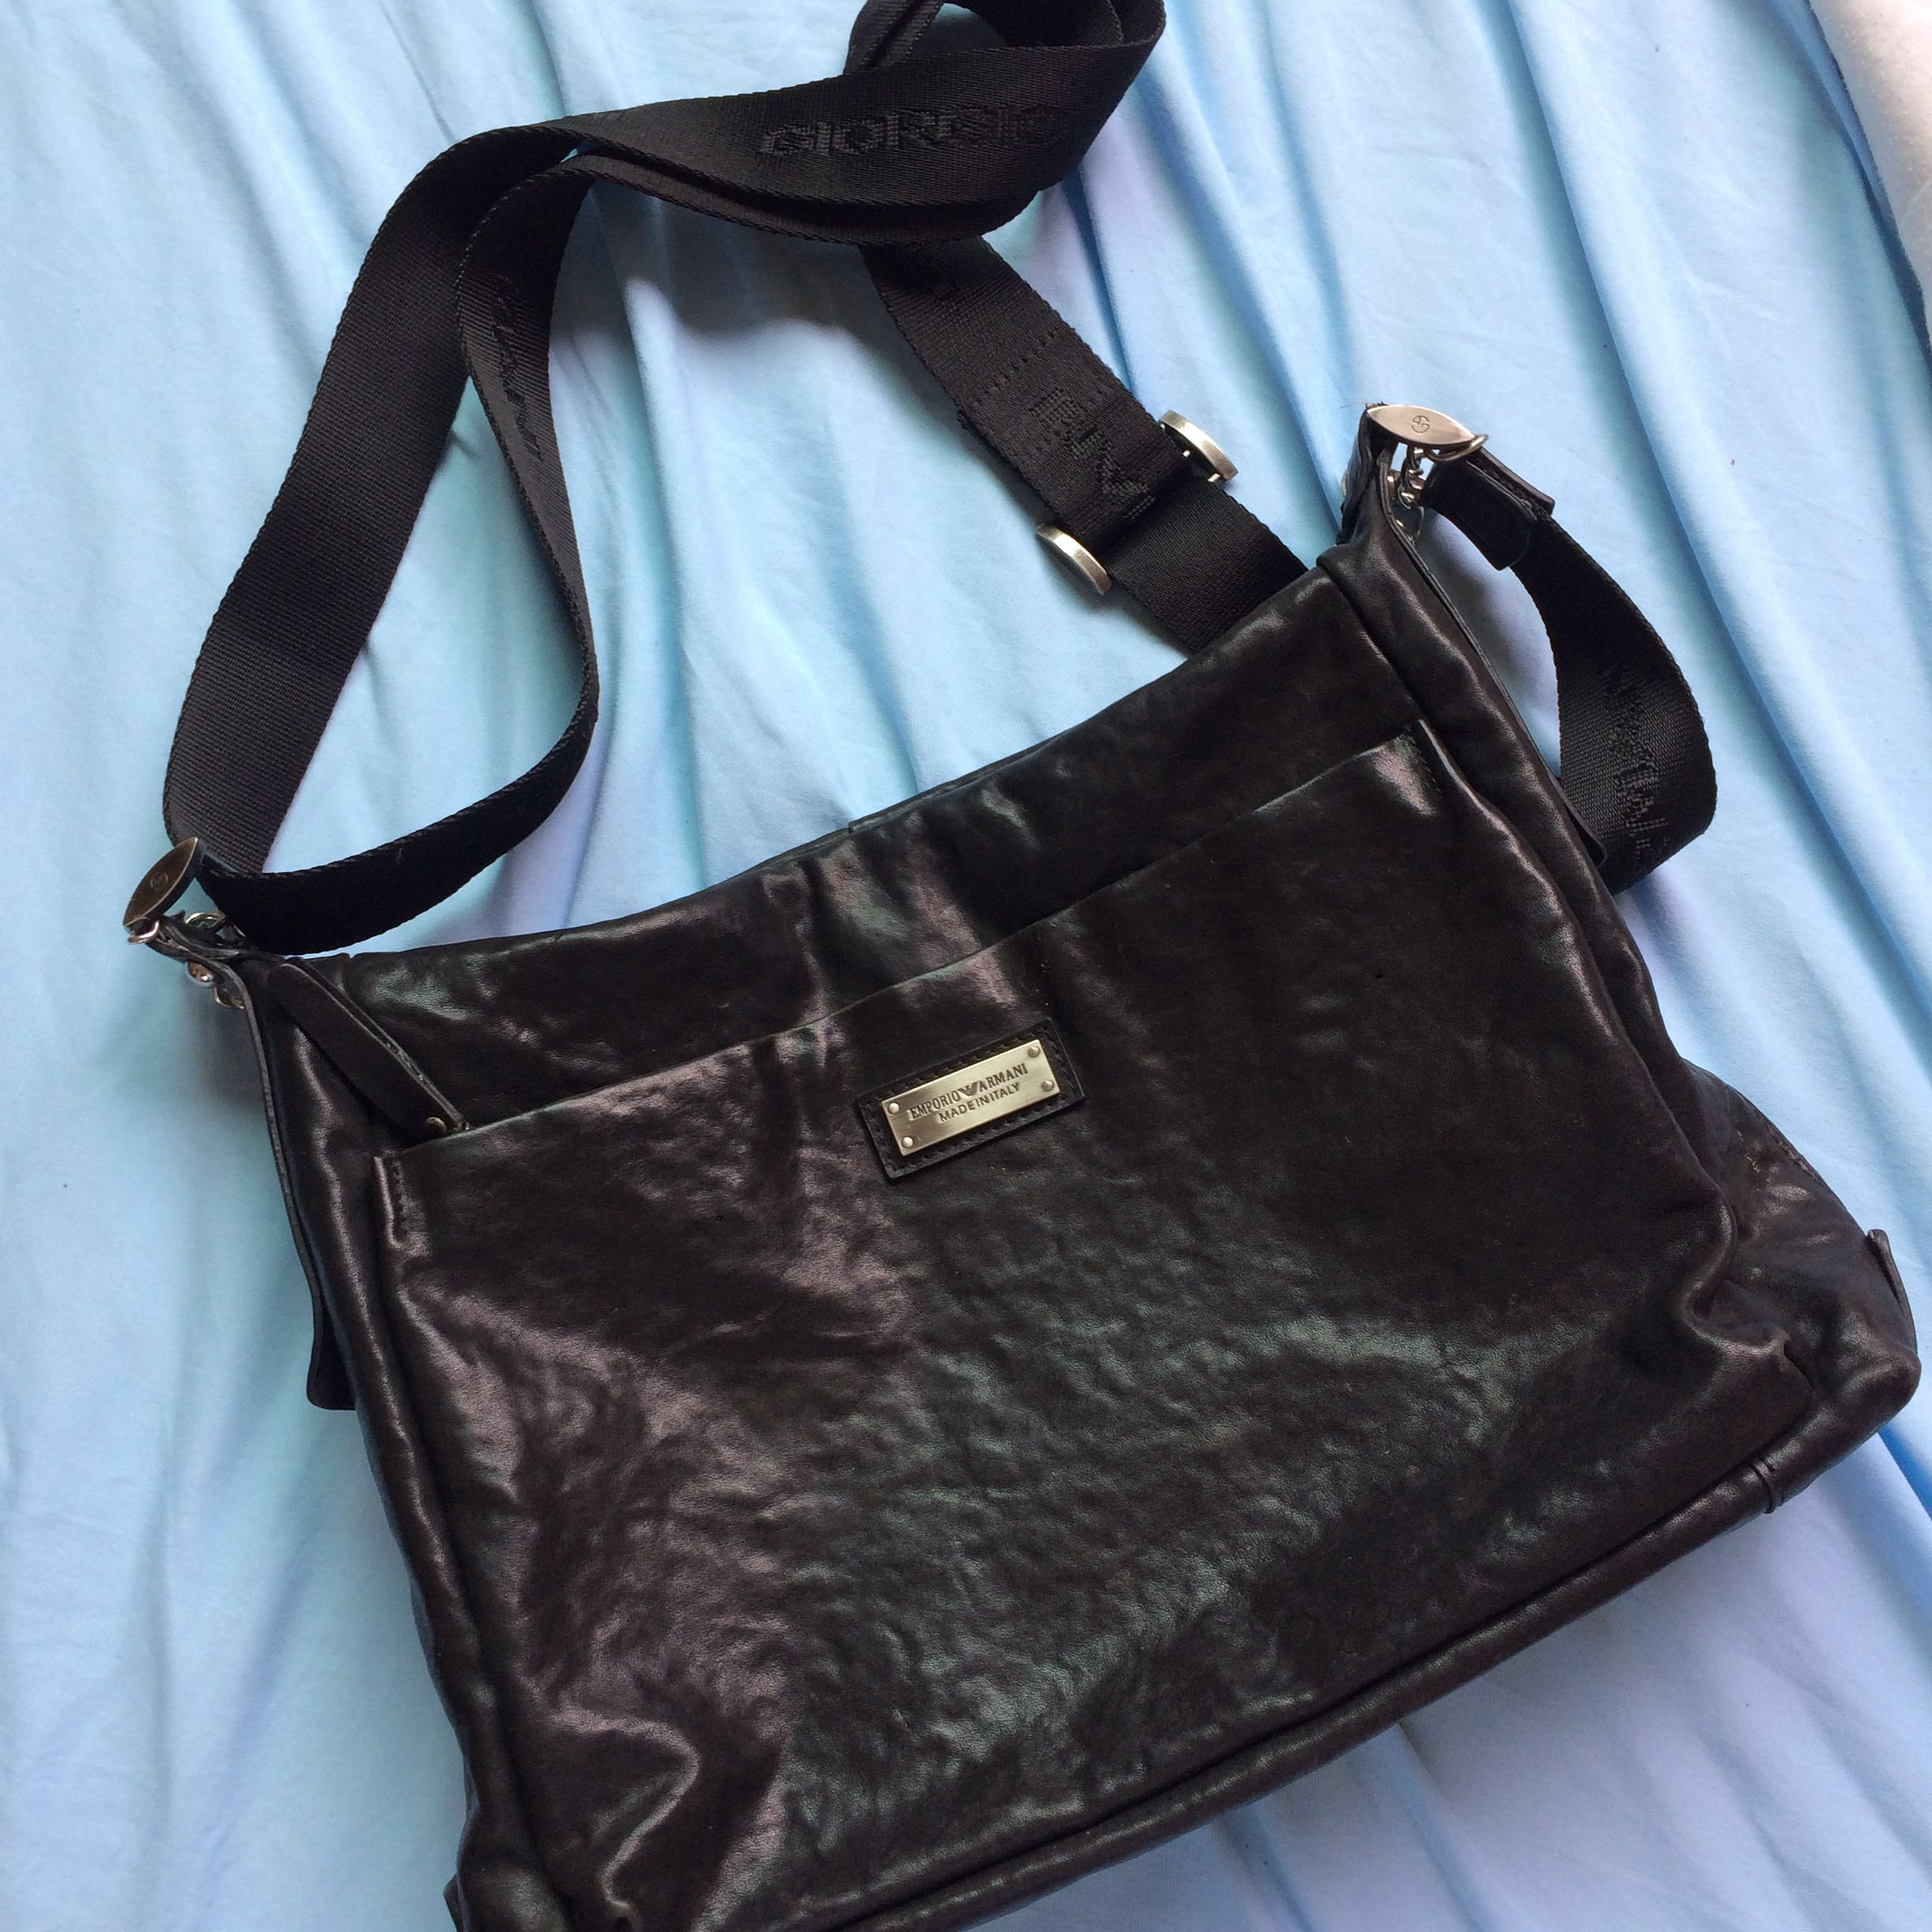 a9b4450892a Auth Giorgio Armani Sling Bag, Men s Fashion, Bags   Wallets, Wallets on  Carousell